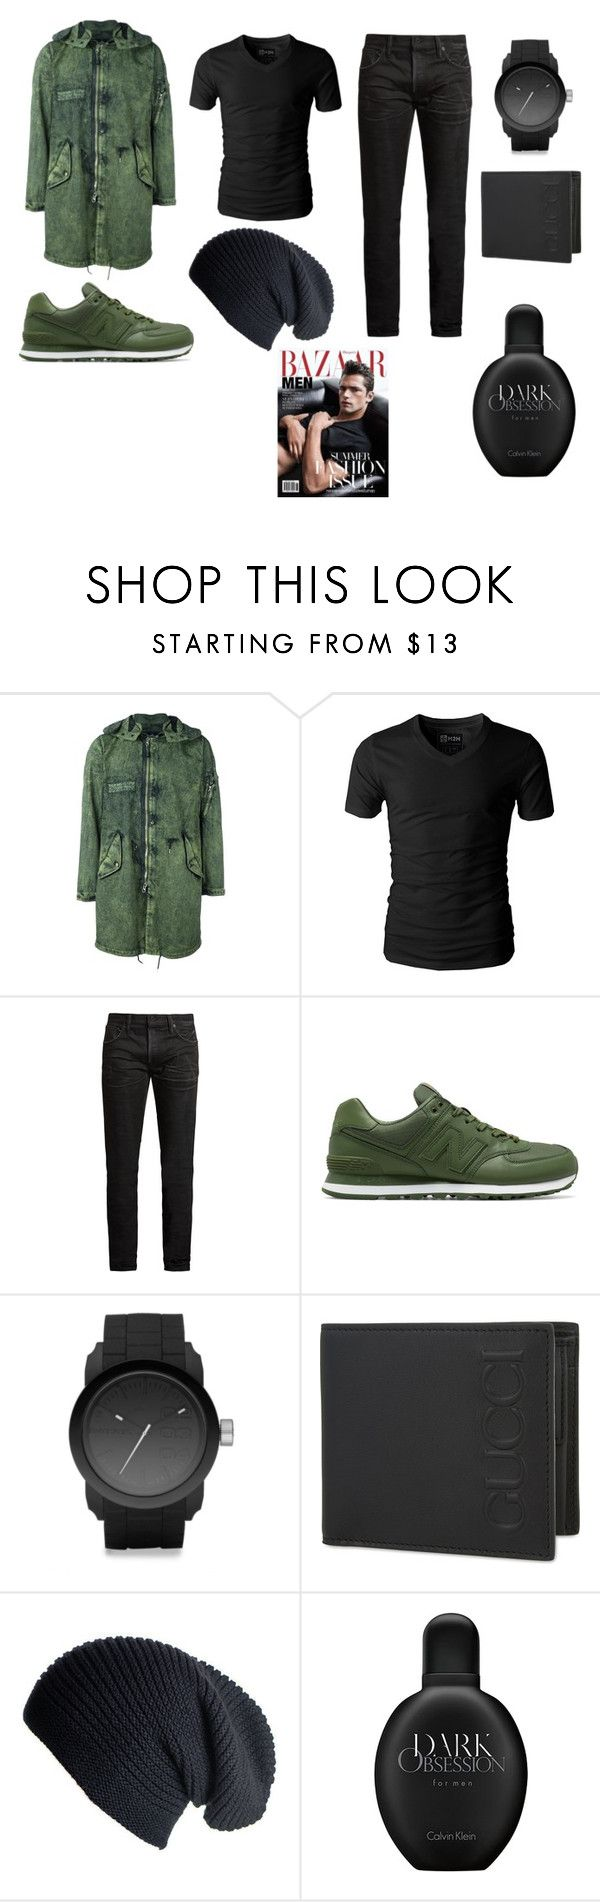 """прогулка"" by reduska on Polyvore featuring stone island shadow project, MasterCraft Union, New Balance, Diesel, Gucci, Black, Calvin Klein, men's fashion и menswear"